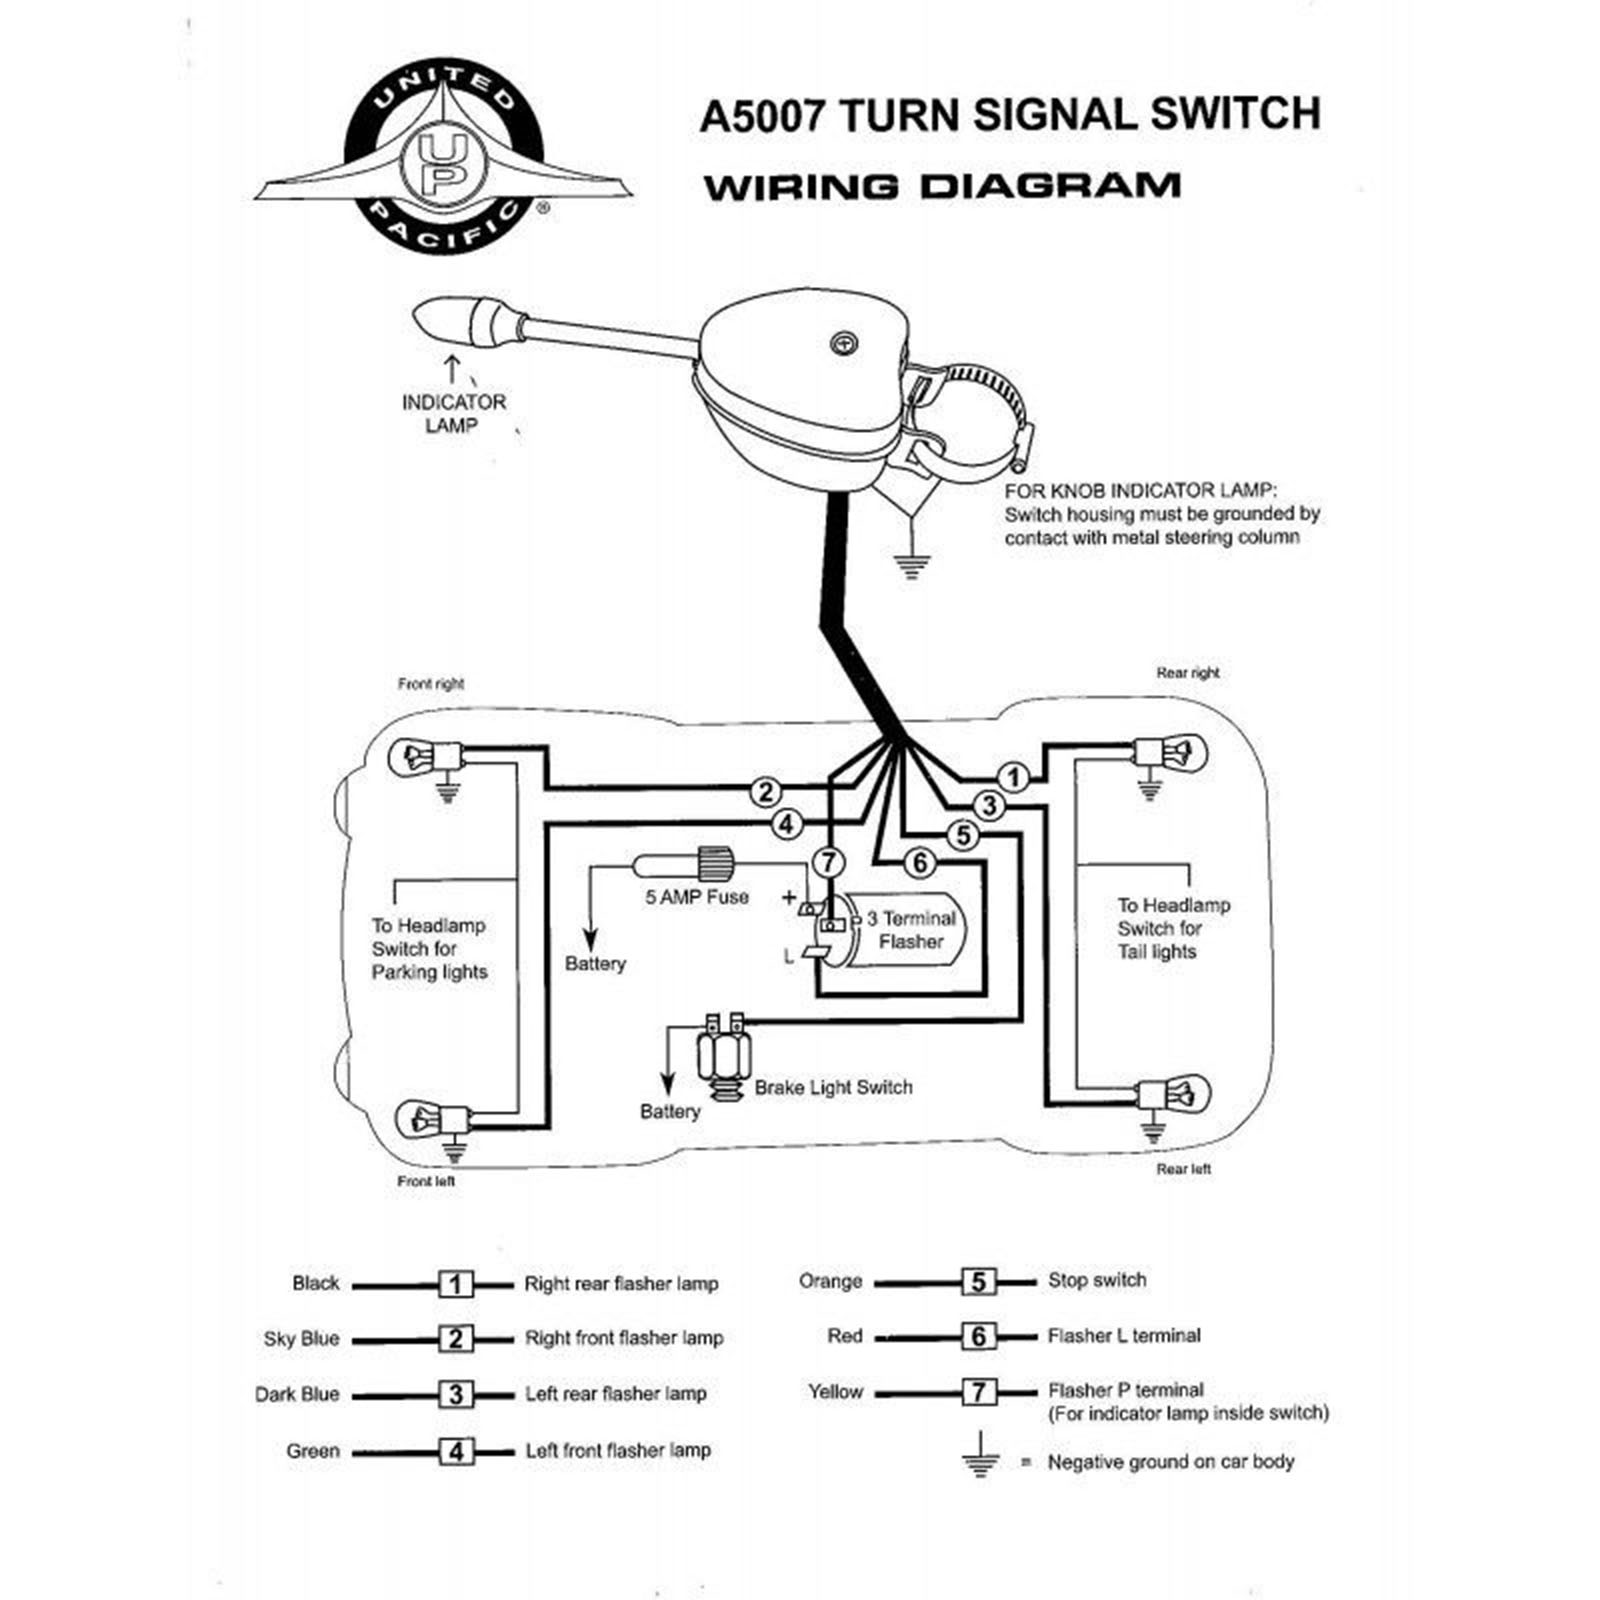 Wiring Harness For Ke Lights Free Download Wiring Diagrams Pictures